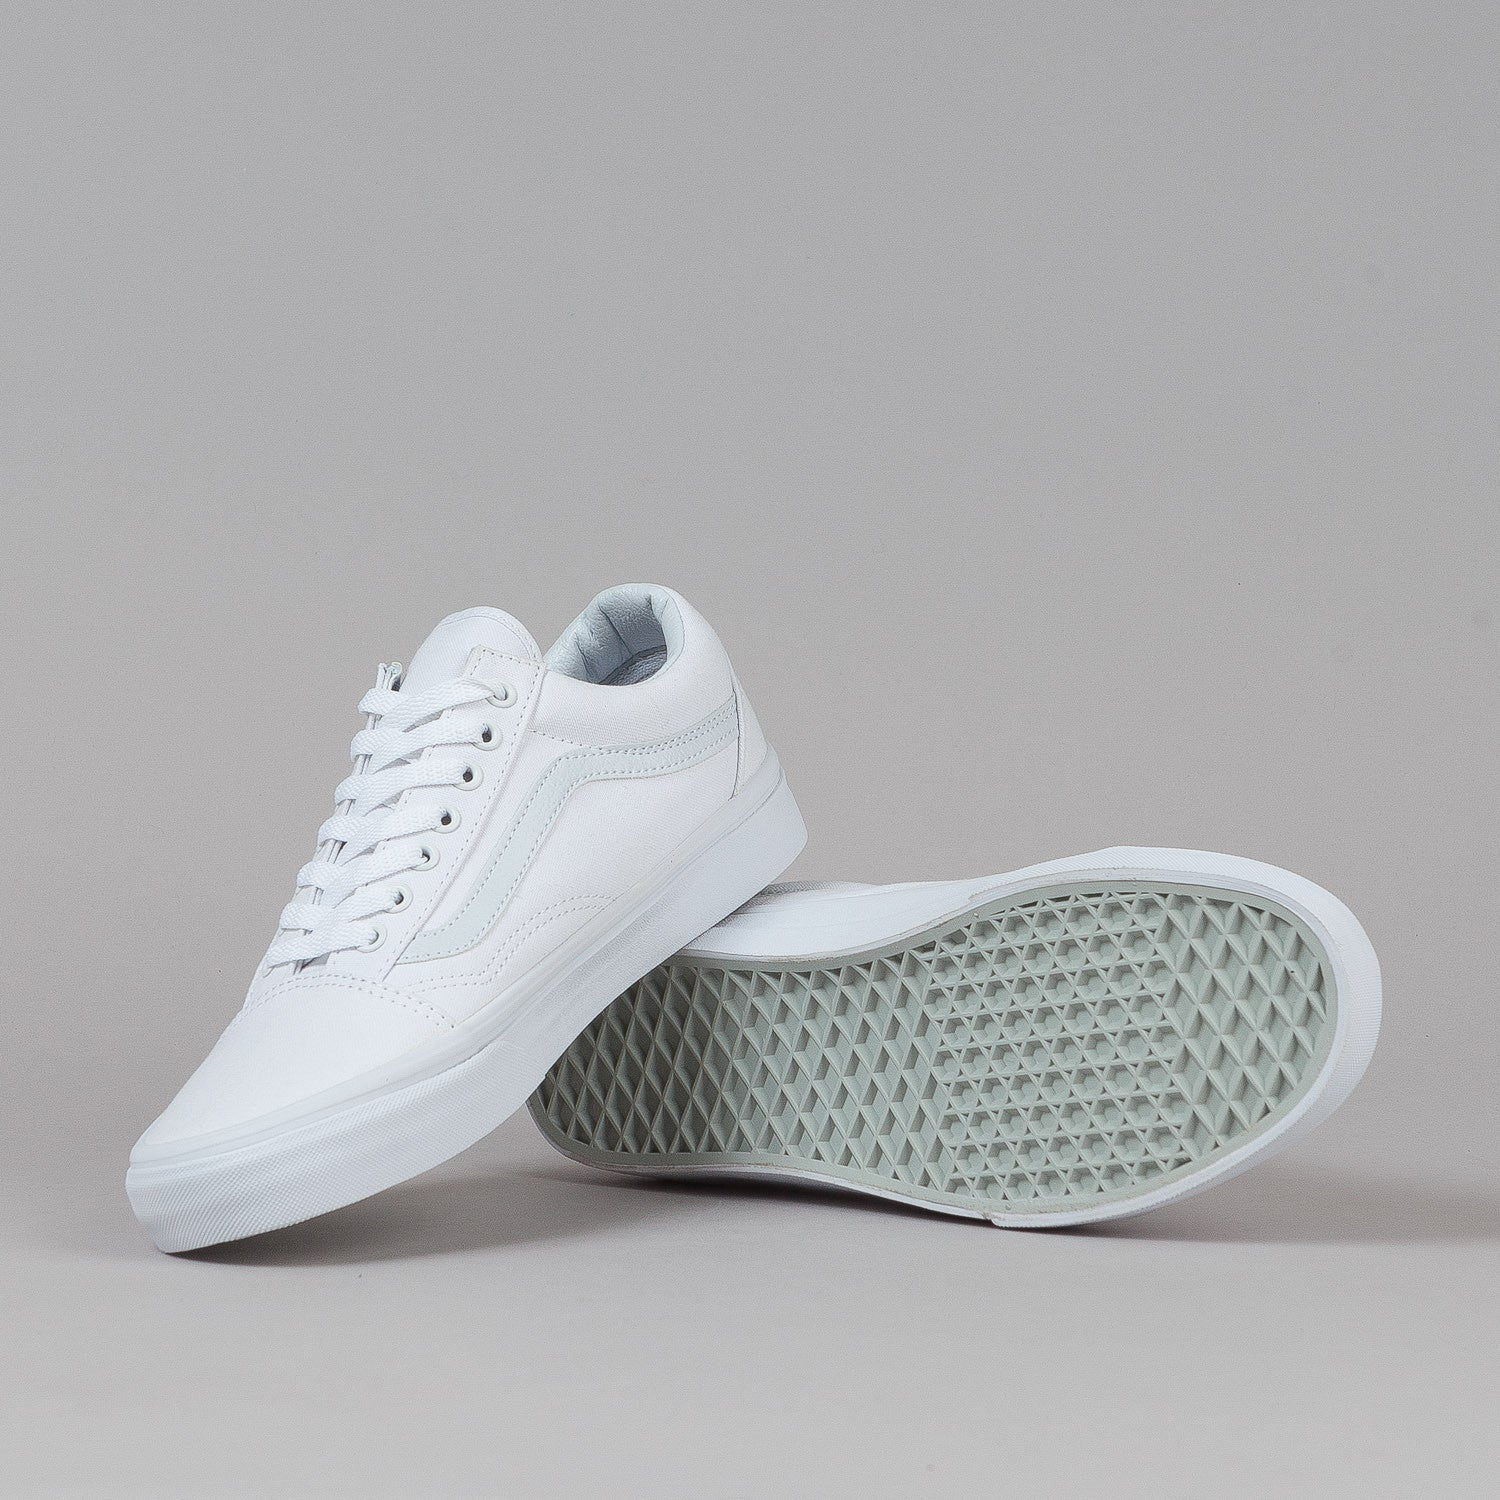 Vans Old Skool Shoes - True White Canvas